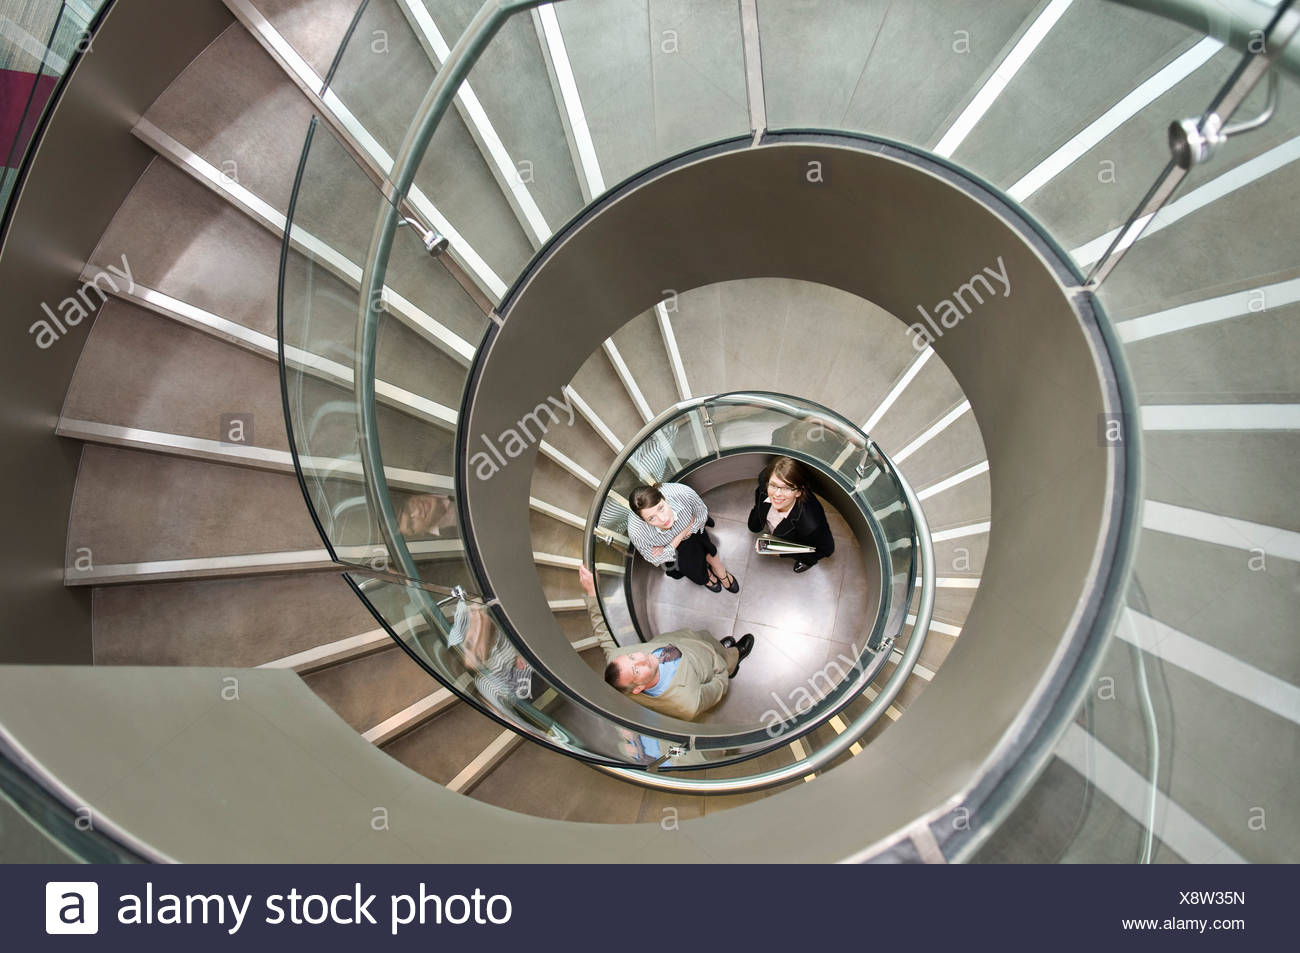 Business trio in a spiral stairwell - Stock Image